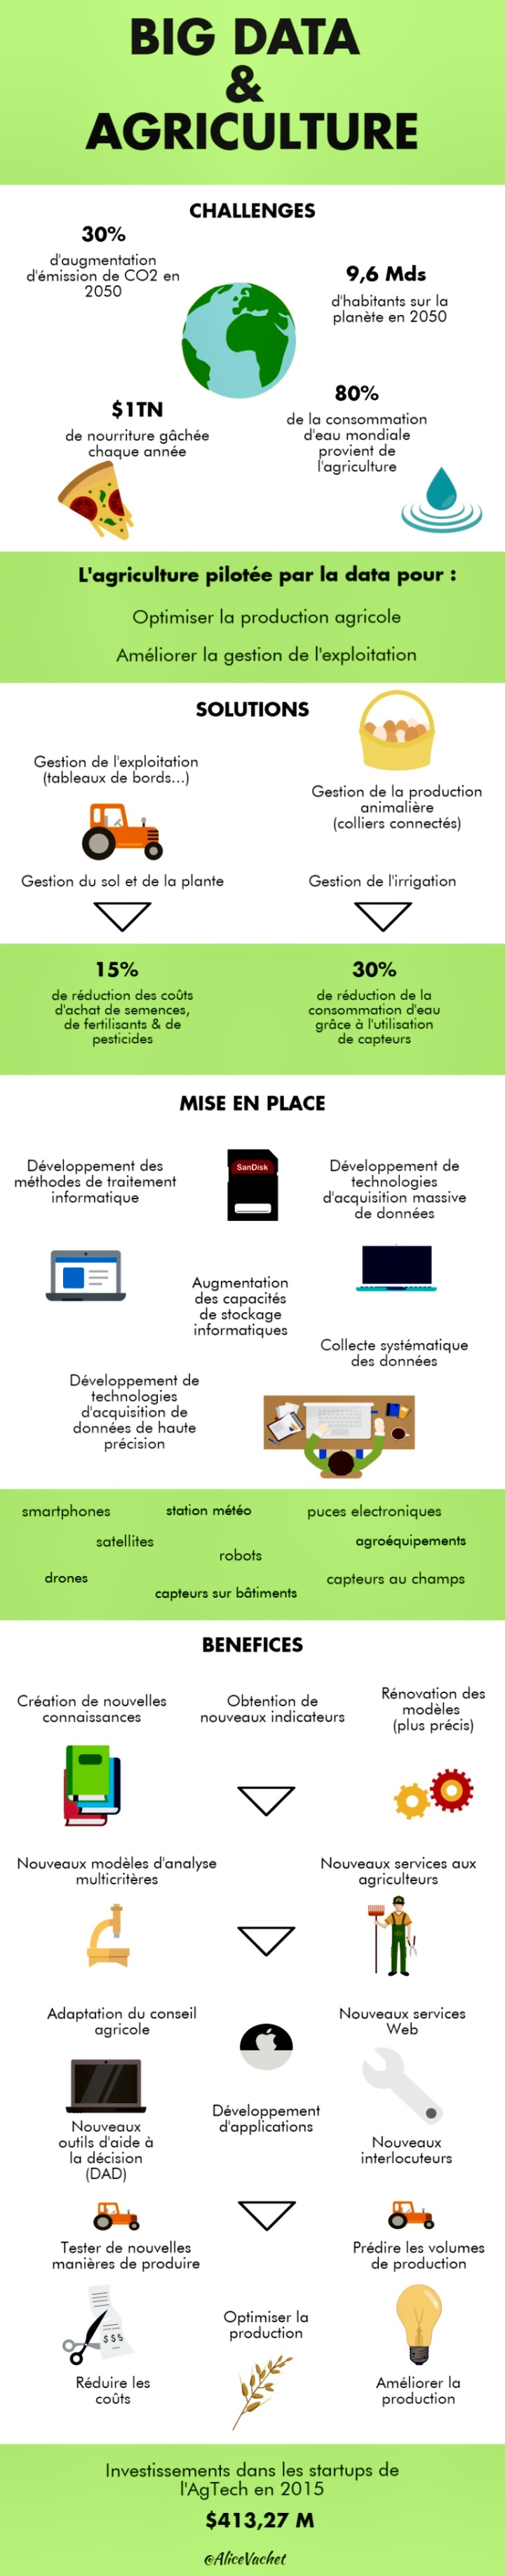 [Infographie] Big data &agriculture